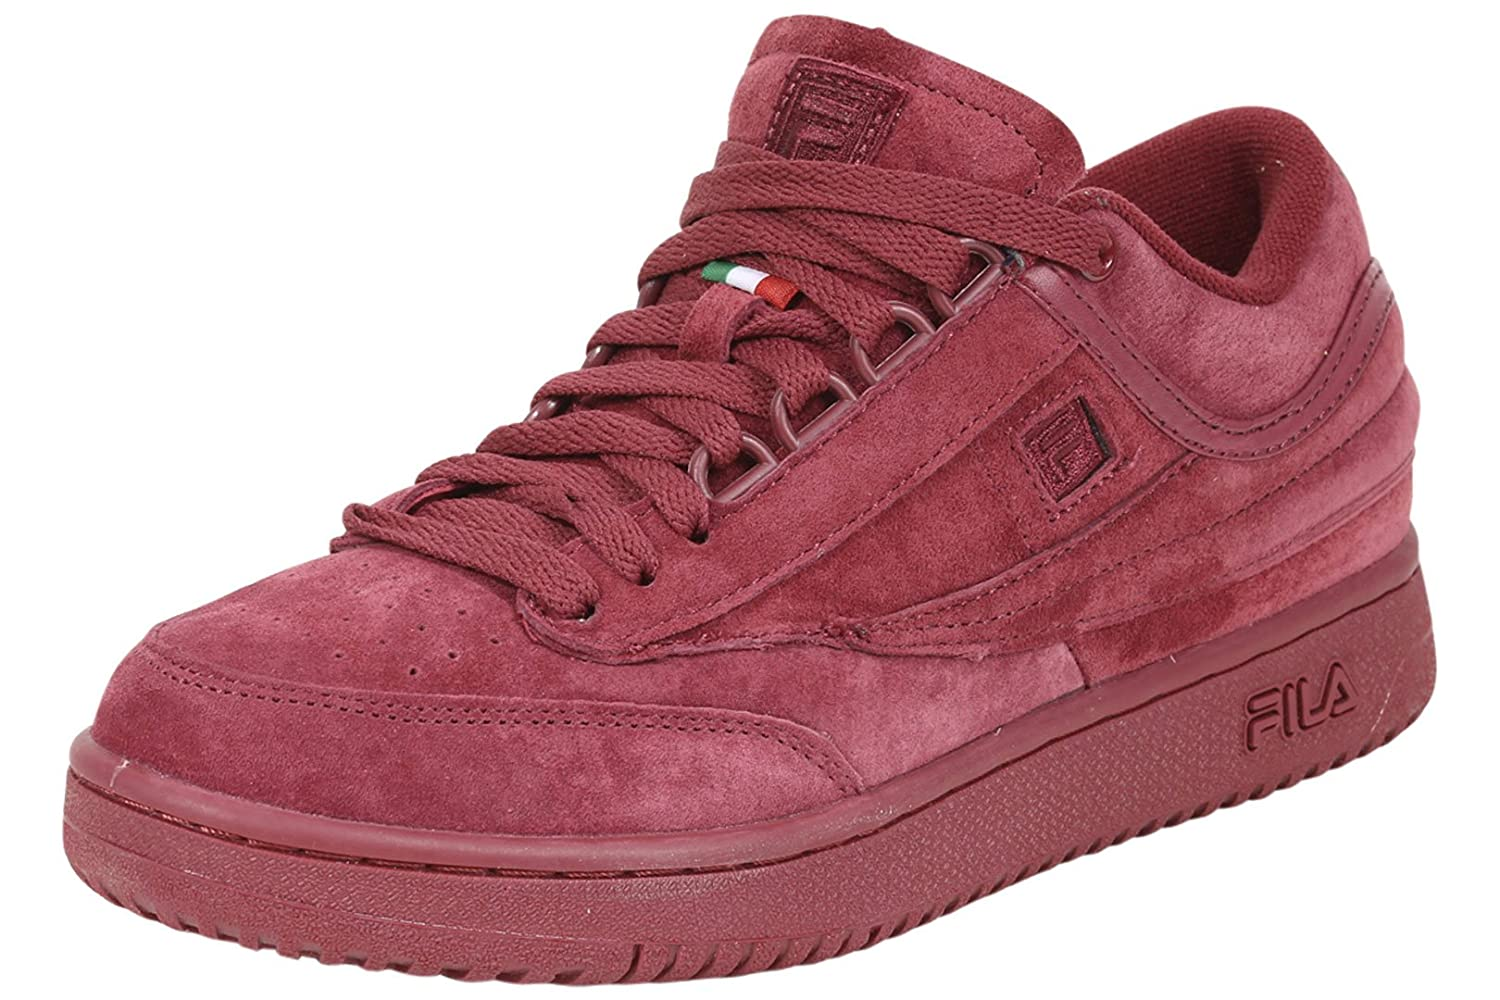 Buy Cheap Top Quality Fila T-1 Mid Premium Tennis Sneaker(Men's) -Biking Red/Biking Red/Biking Red Cheap Manchester Great Sale Cheap Authentic FpVOh0d